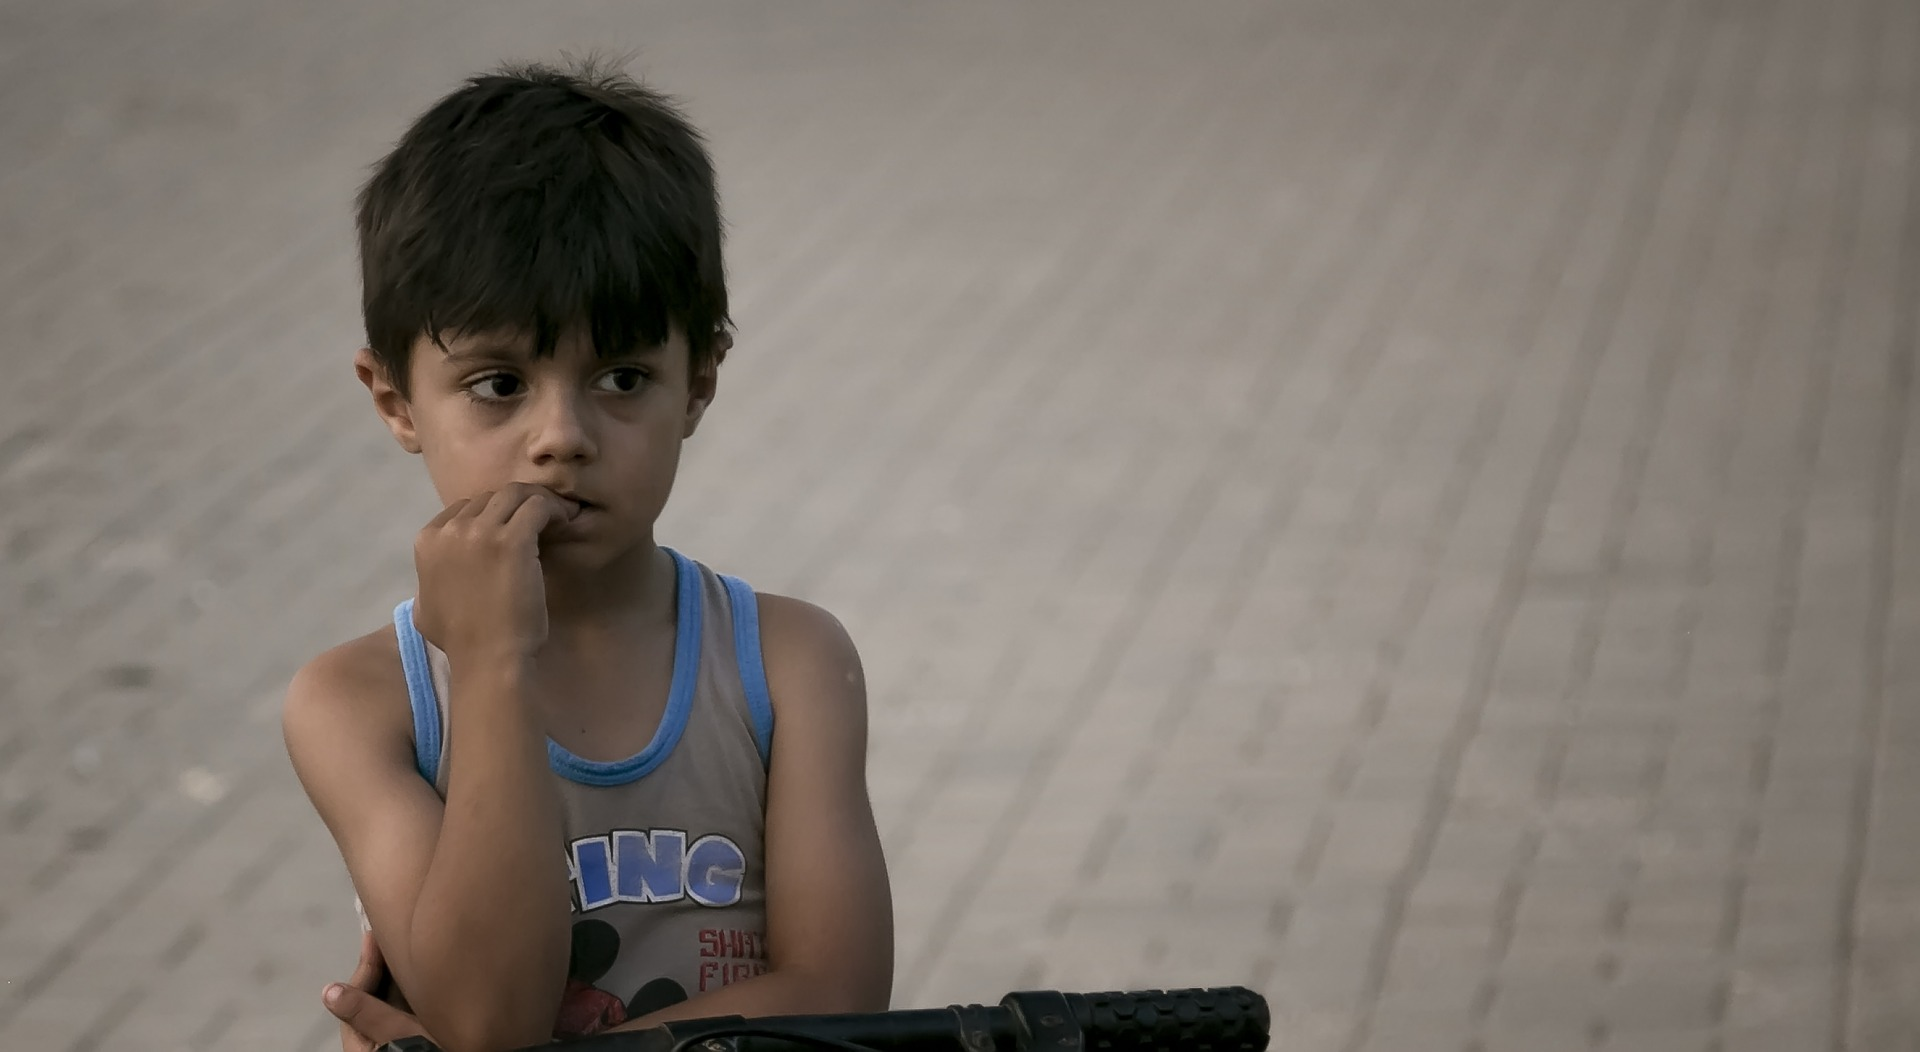 Photo of a Syrian child.